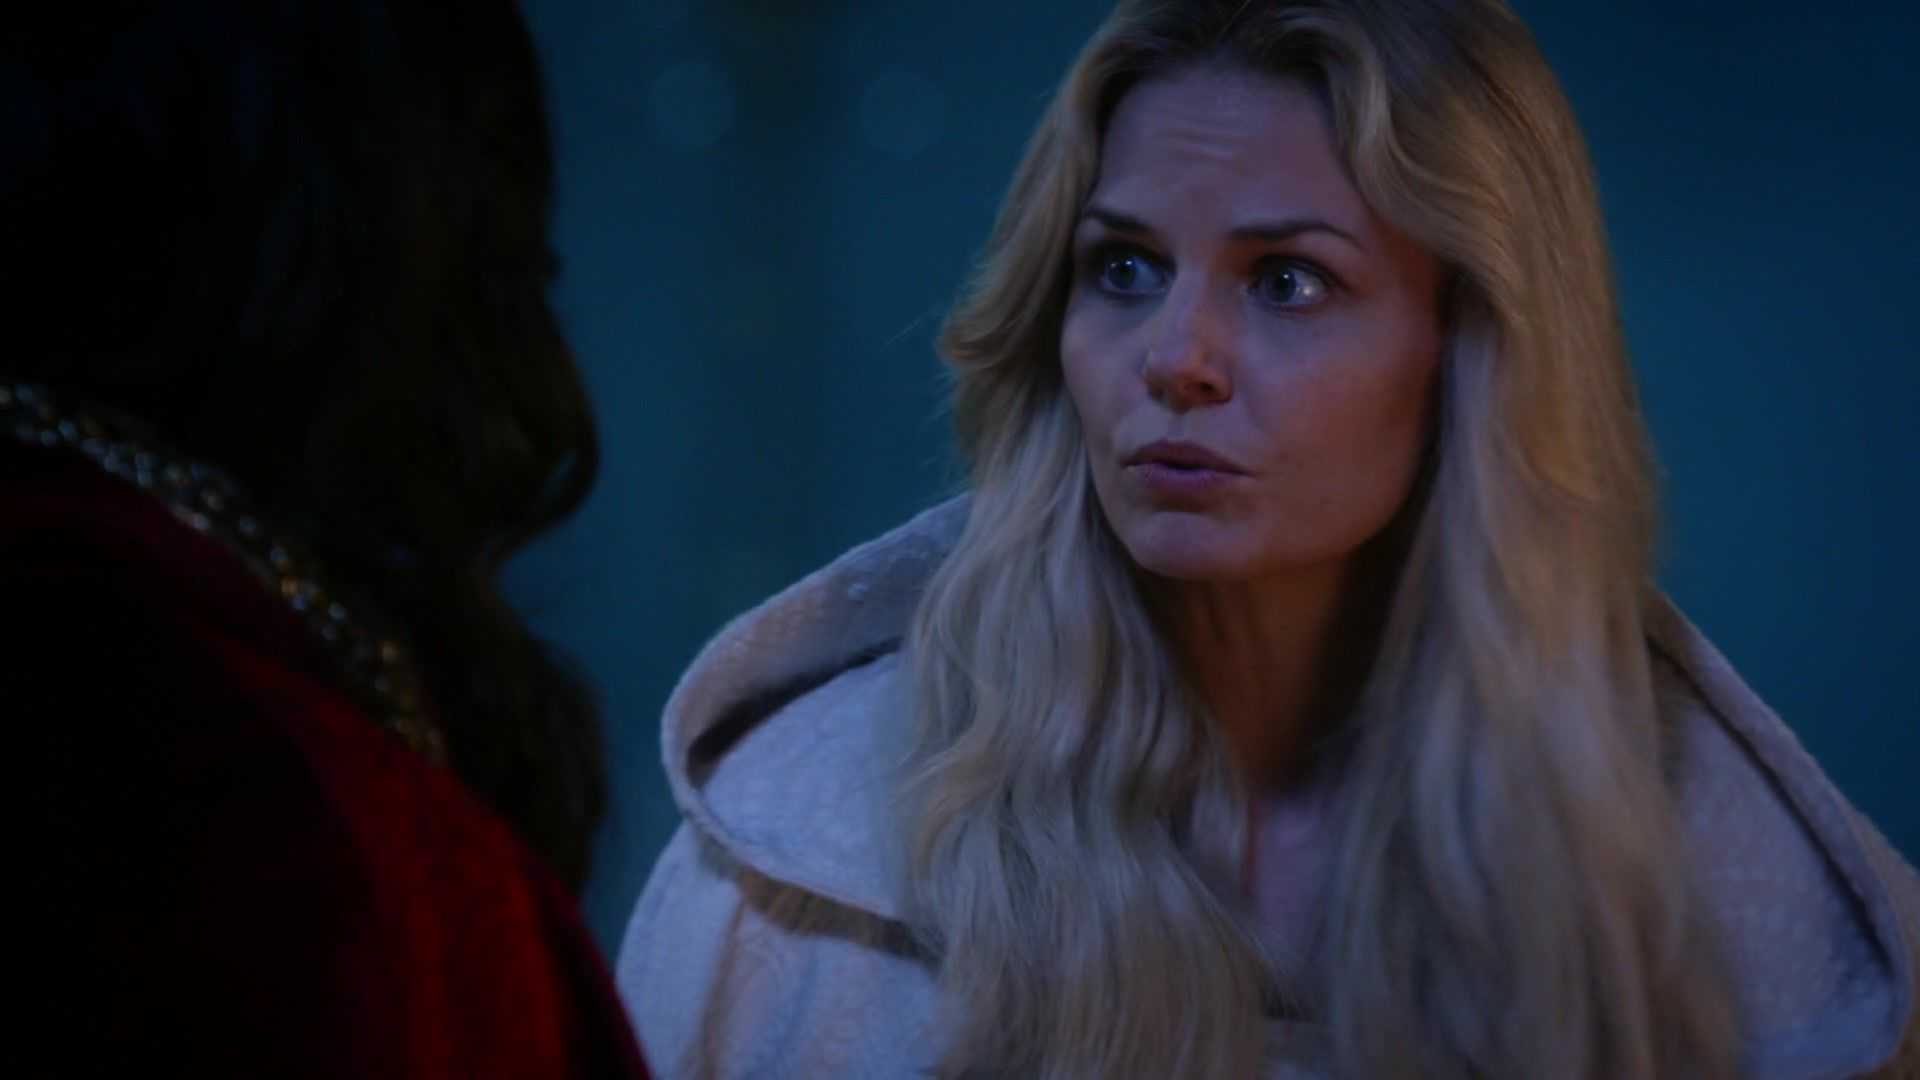 5.05 Dreamcatcher - Once Upon a Time S05E05 1080p 2006 - Once Upon a Time High Quality Screencaps Gallery